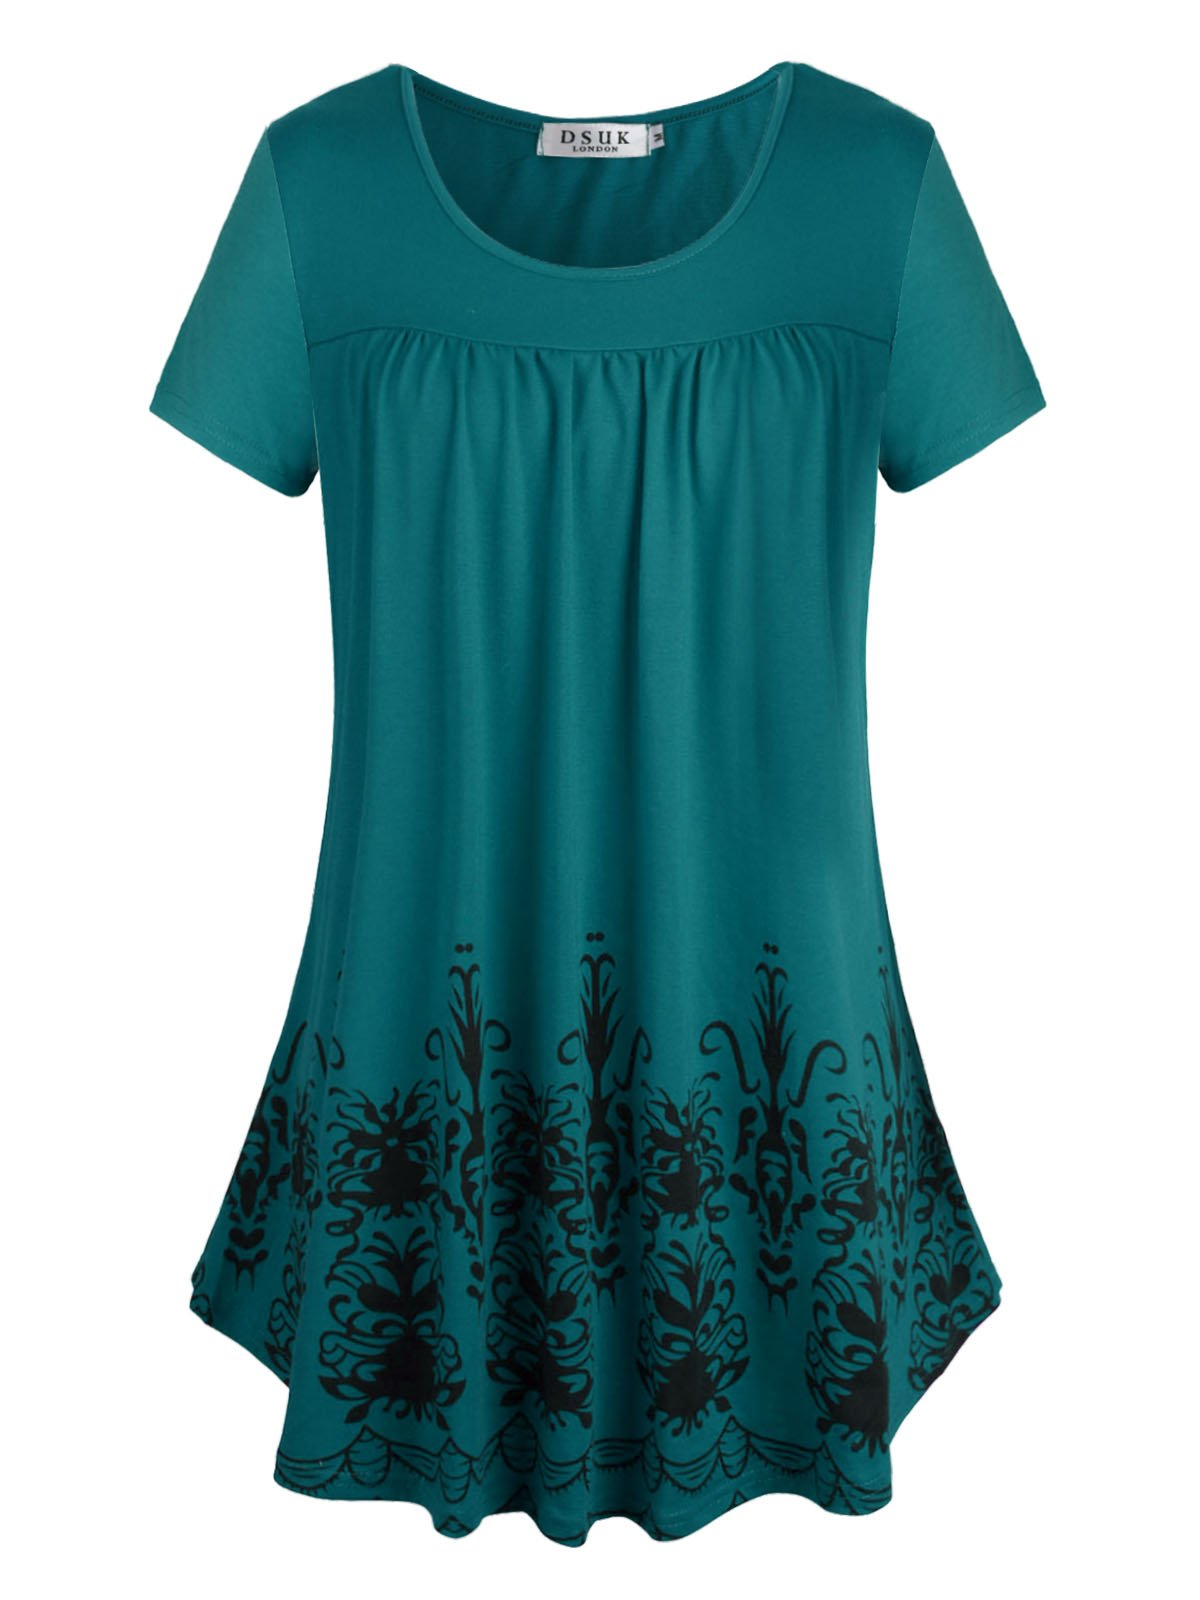 DSUK Soft Tunic Tops Women, Ladies O Neck Long Style Fashionable Simple Relax Elegance Comfortable Soft-Touch Charming Gentle Front Ruffle Leisurewear Snug Clothes Tunics for Party Lake Blue Large